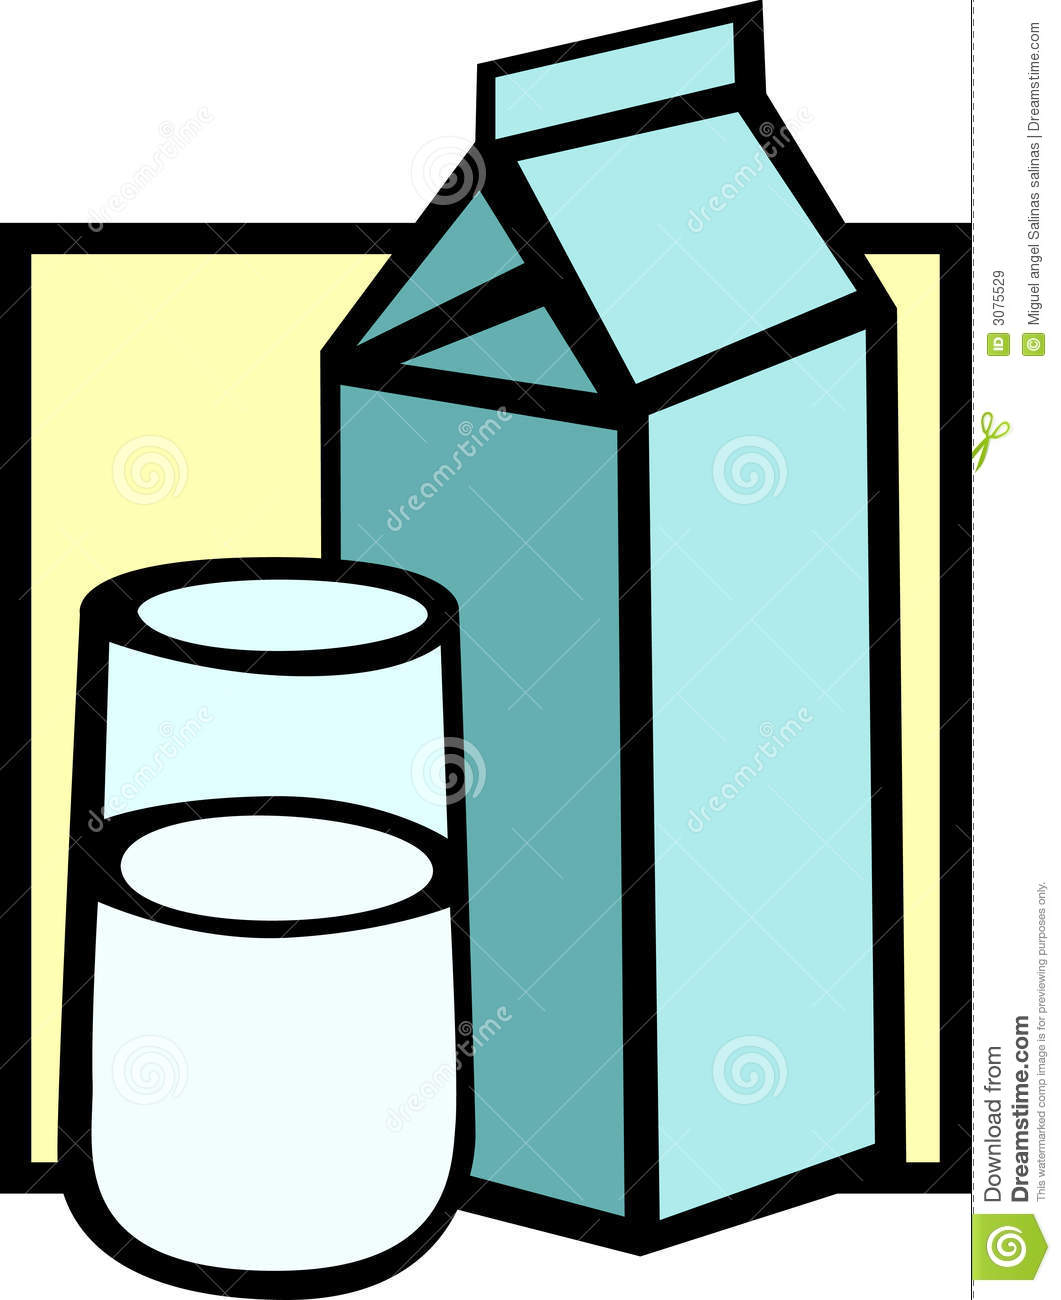 clipart of a glass of milk - photo #36